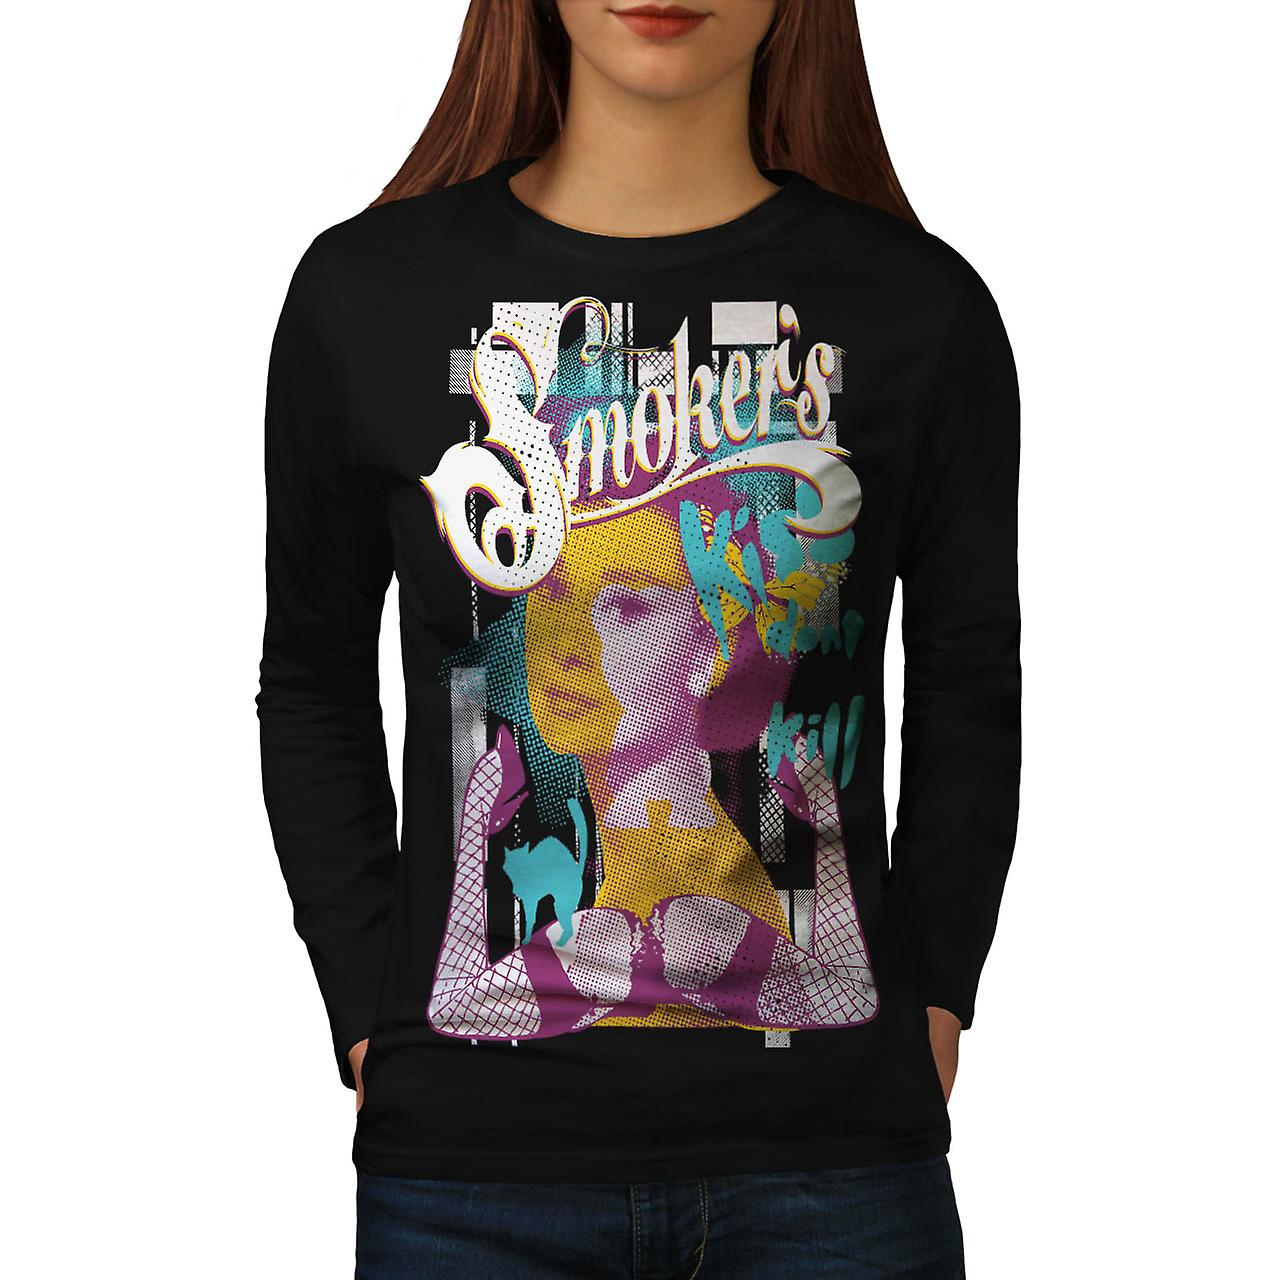 Smoker Kiss Dont Kill Audrey Leg Women Black Long Sleeve T-shirt | Wellcoda